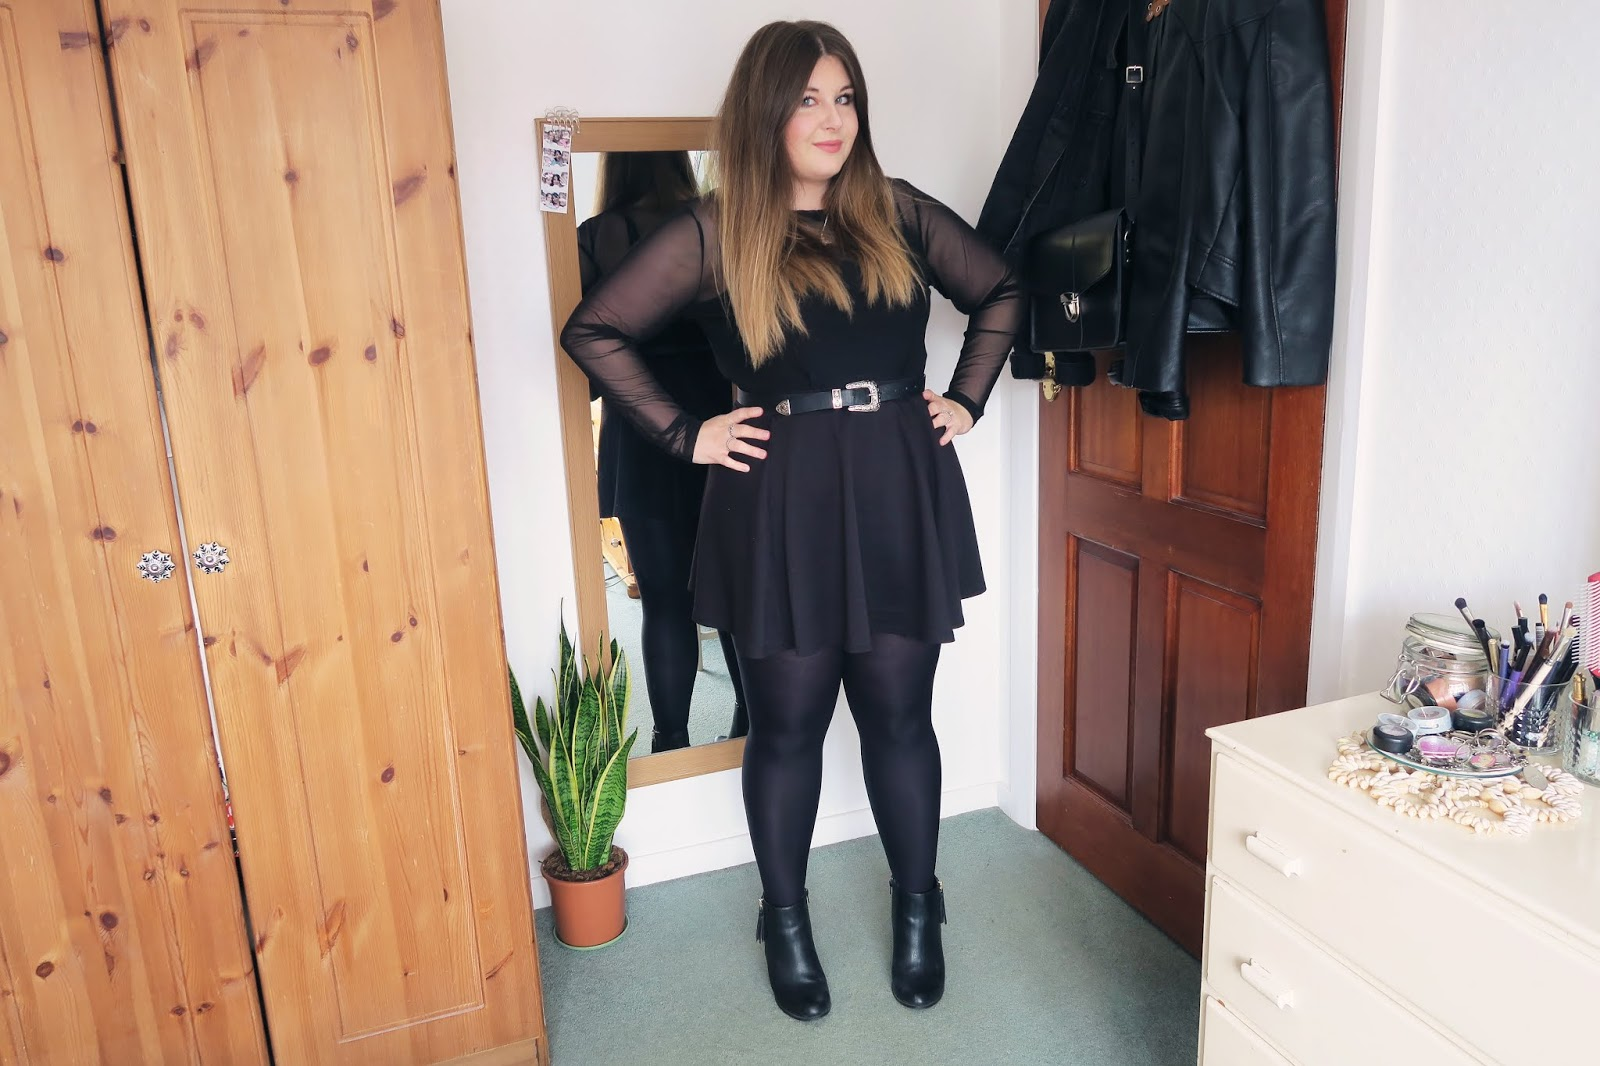 Wearing a black skater skirt, a black mesh top, and black heeled boots